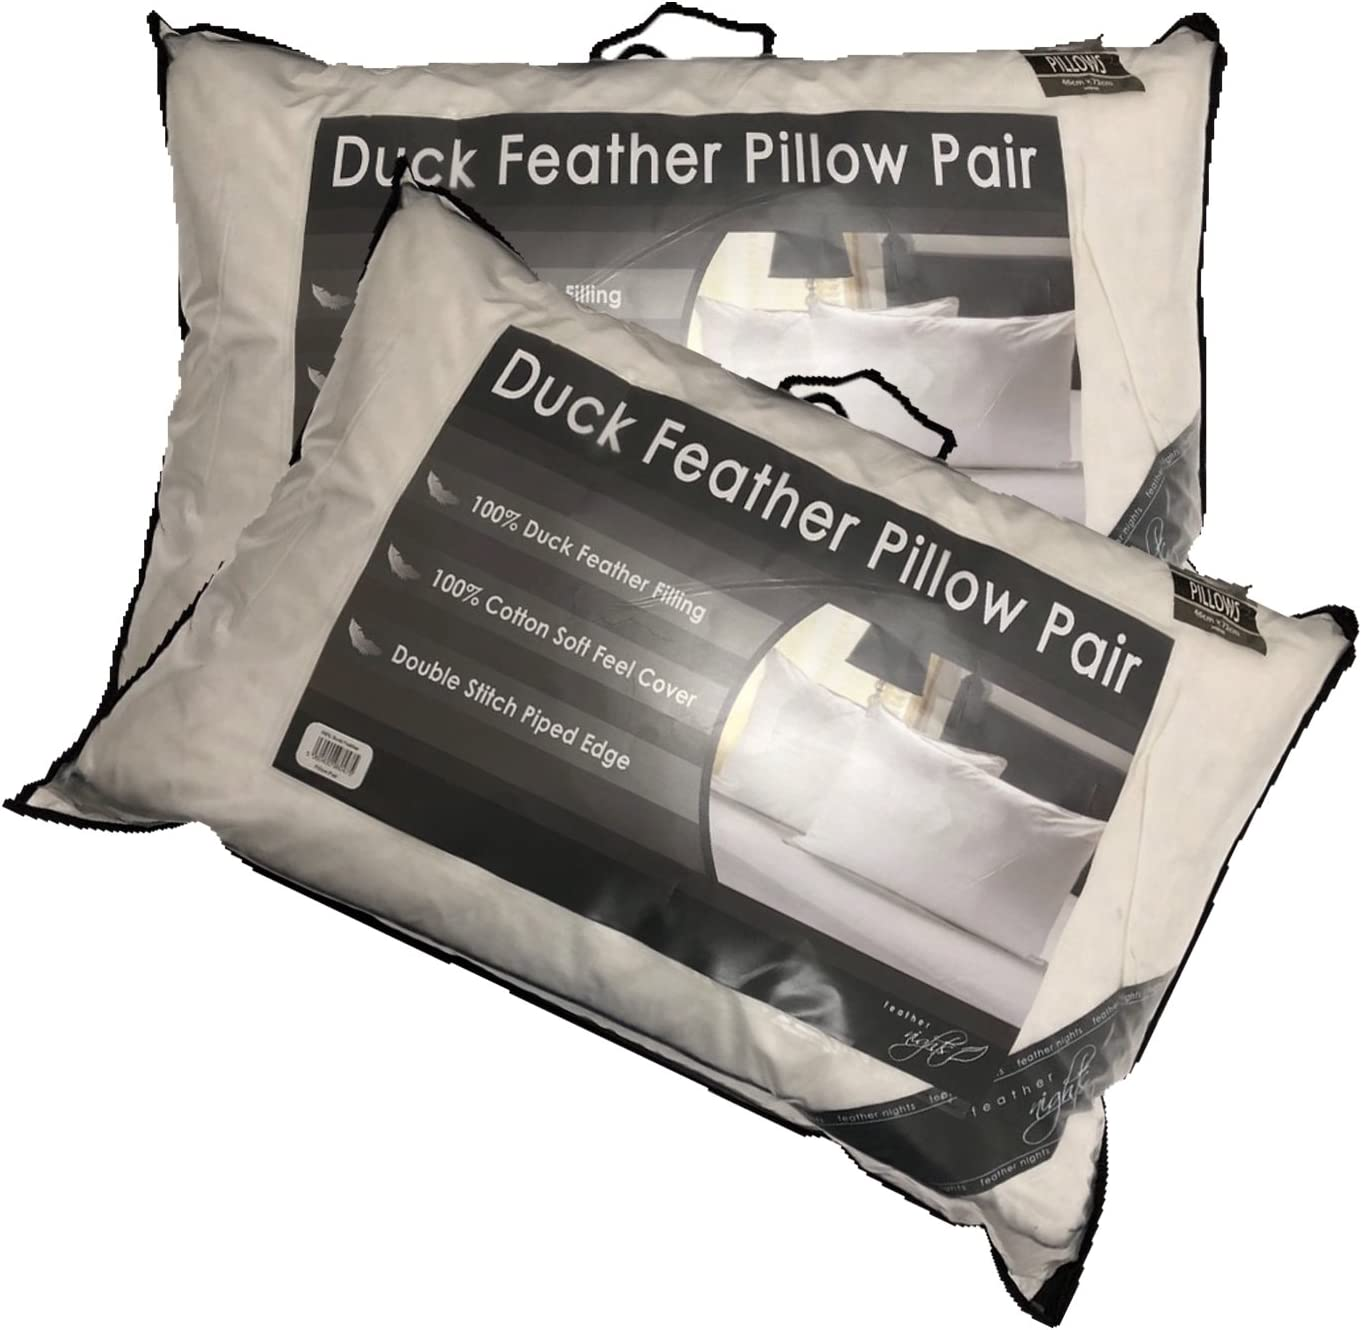 EXTRA FILLED DUCK FEATHER PILLOW LUXURY HOTEL QUALITY SOFT /& COMFORTABLE